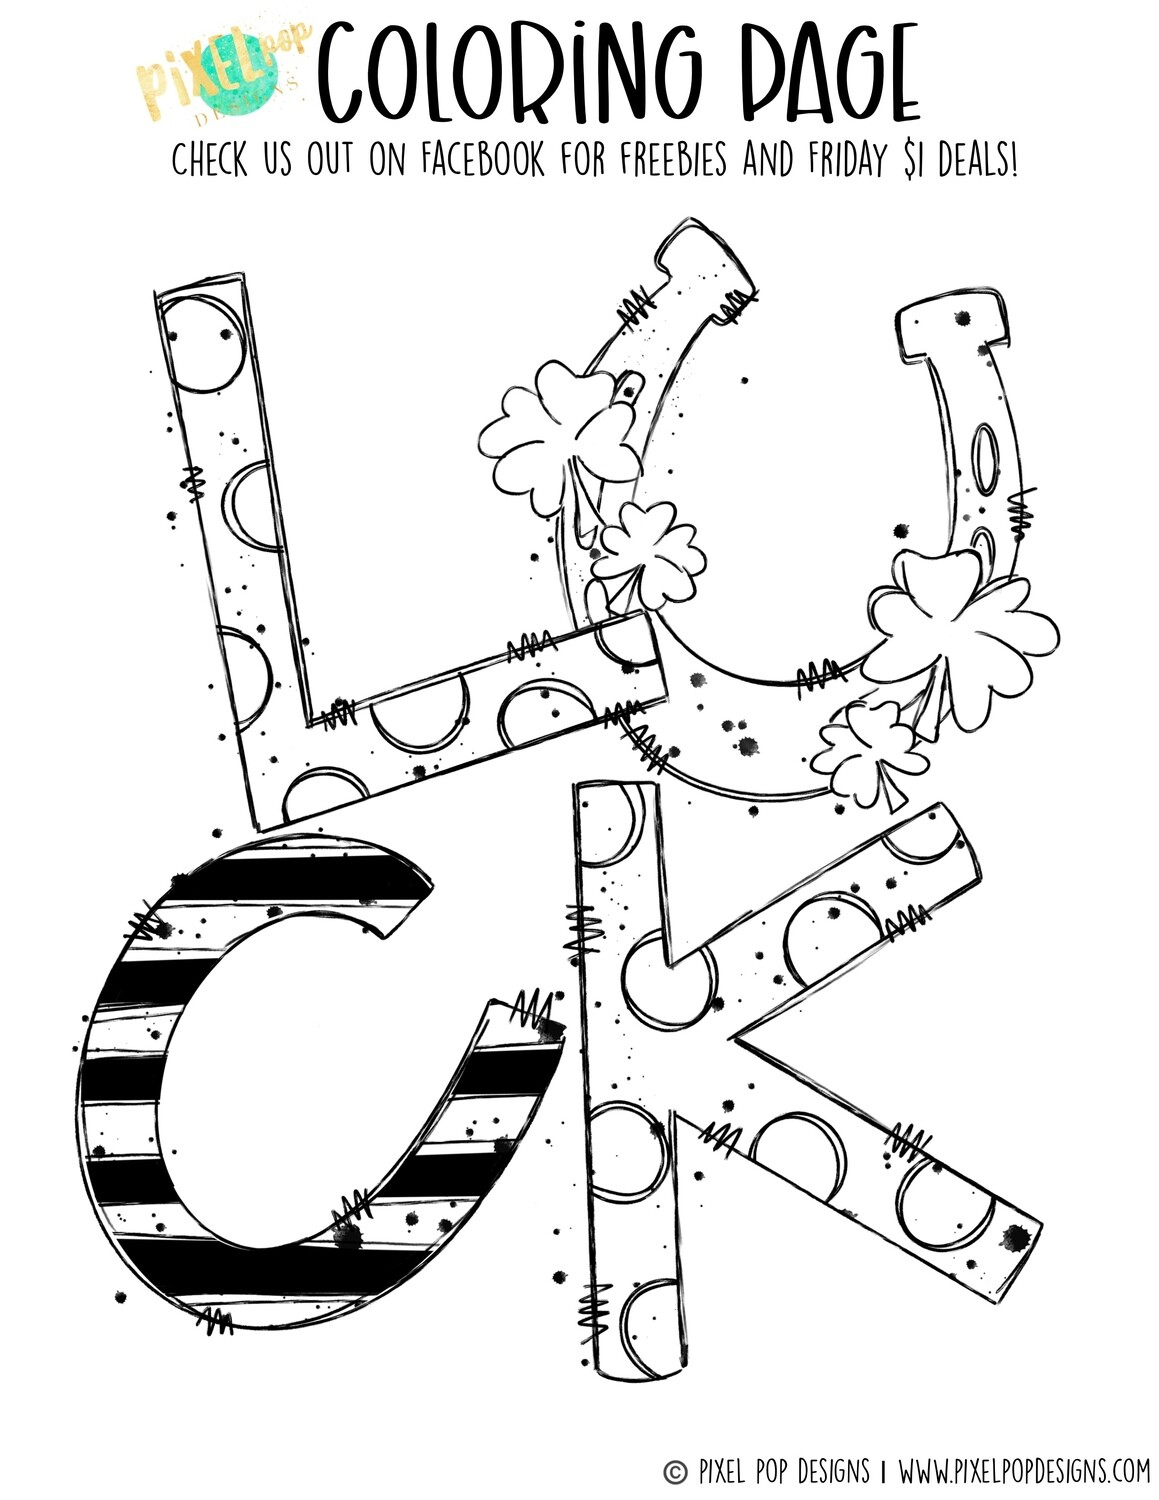 Coloring Page - Luck | Saint Patrick's Day PDF | Clover Art | Horseshoe Design | Digital Download | Printable | St. Paddy's Day